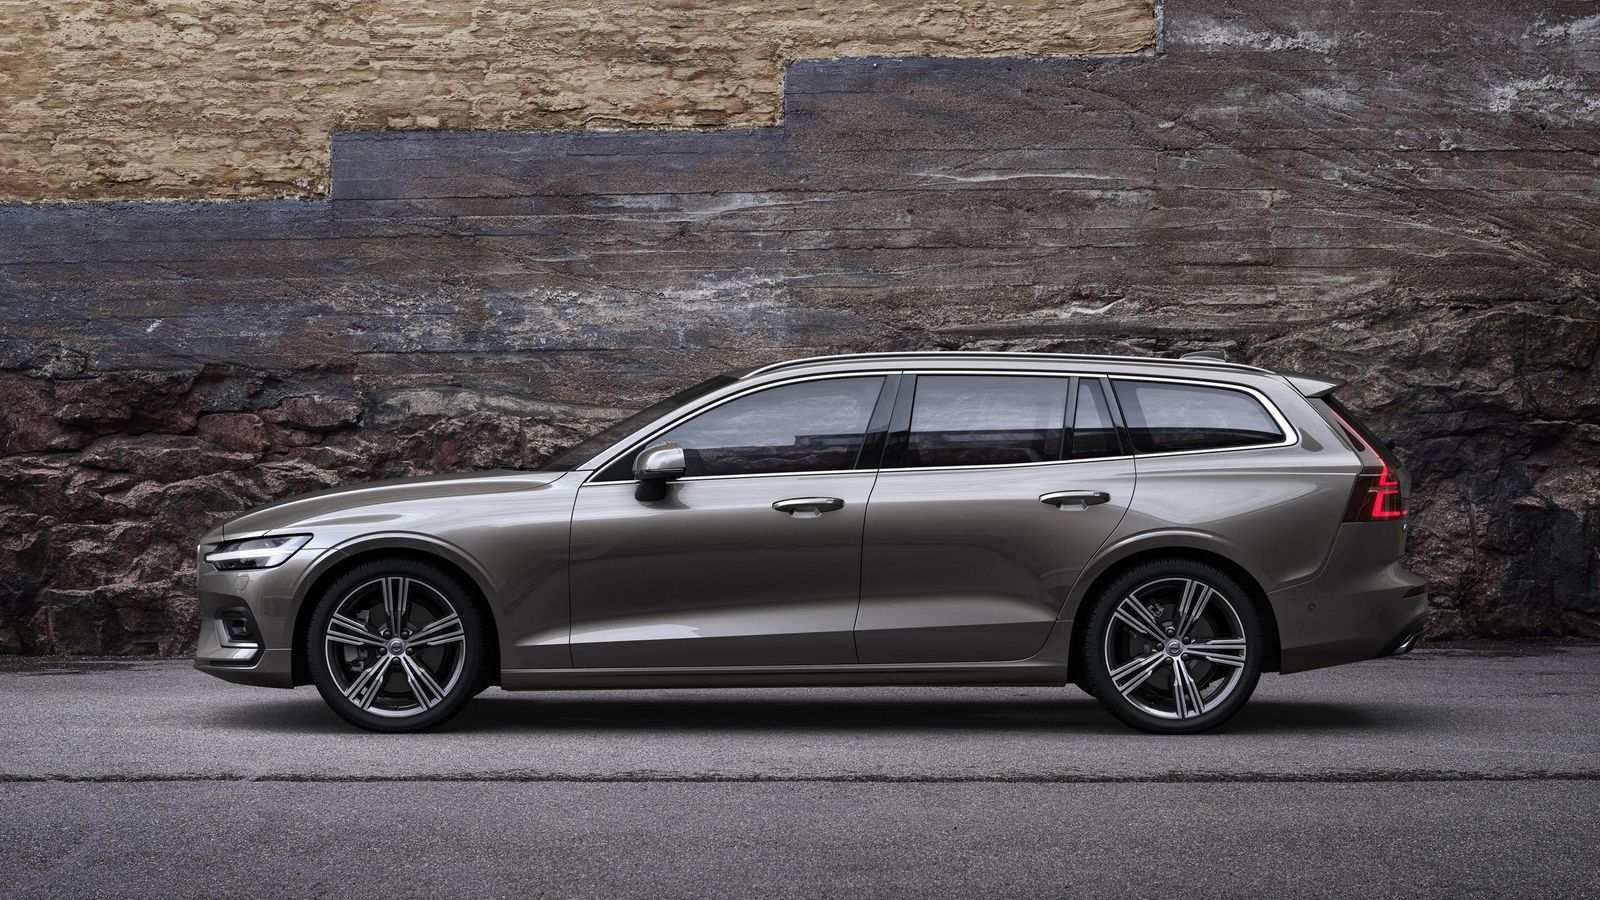 73 All New Volvo 2019 Station Wagon Release Date And Concept